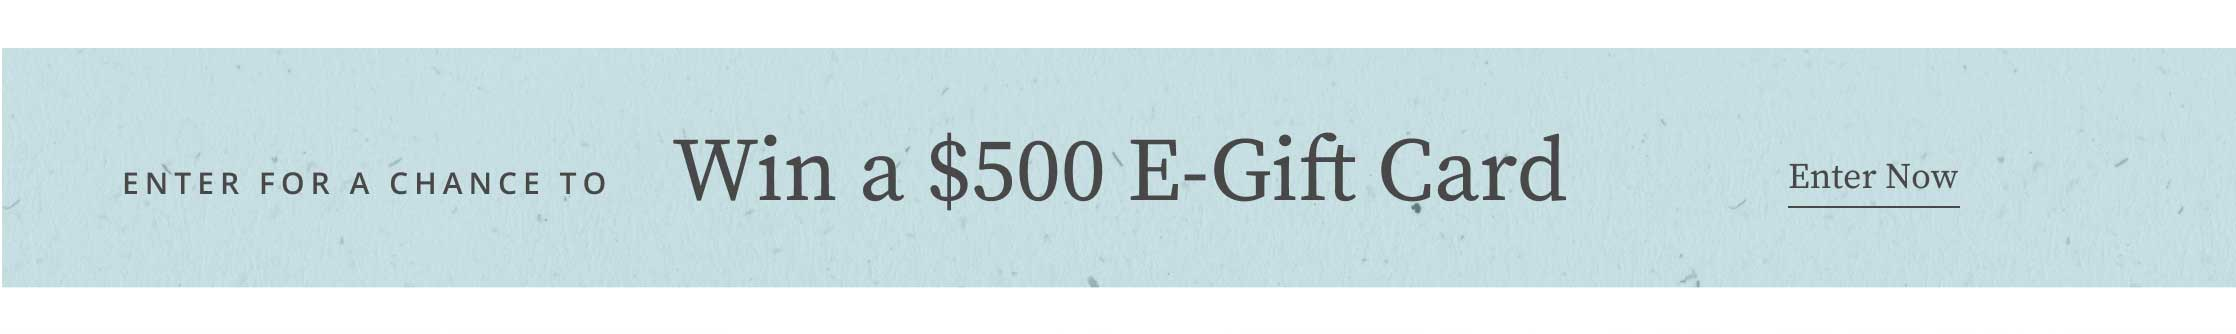 Enter for a chance to win a $500 E-Gift Card  - enter now